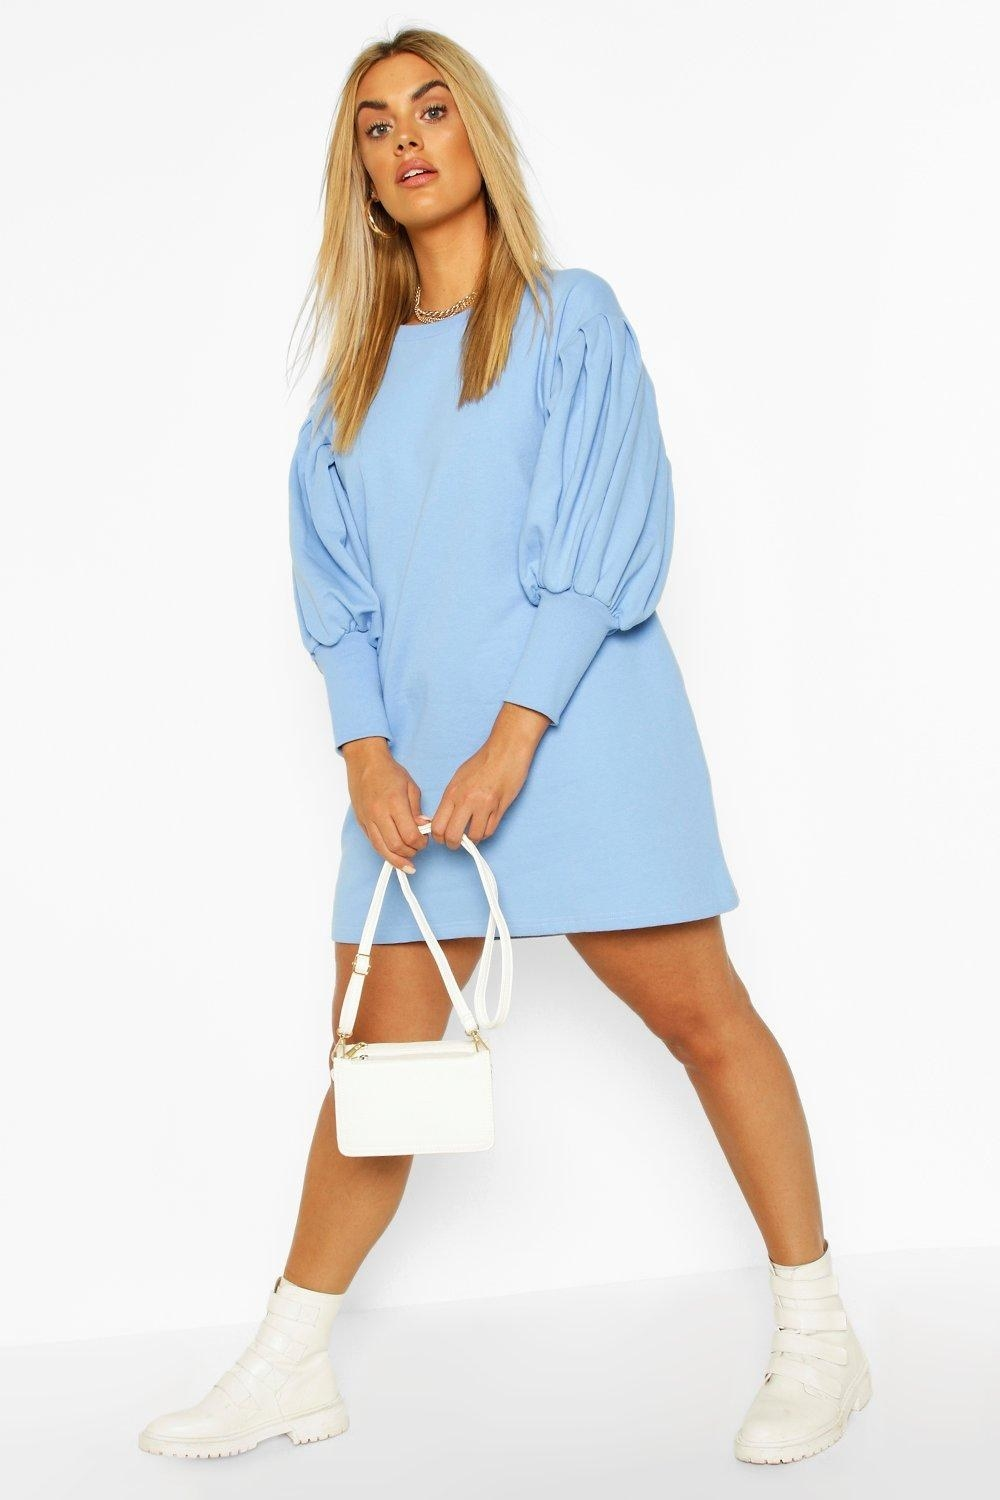 Model in the light blue crewneck dress with balloon sleeve and tight cuffs